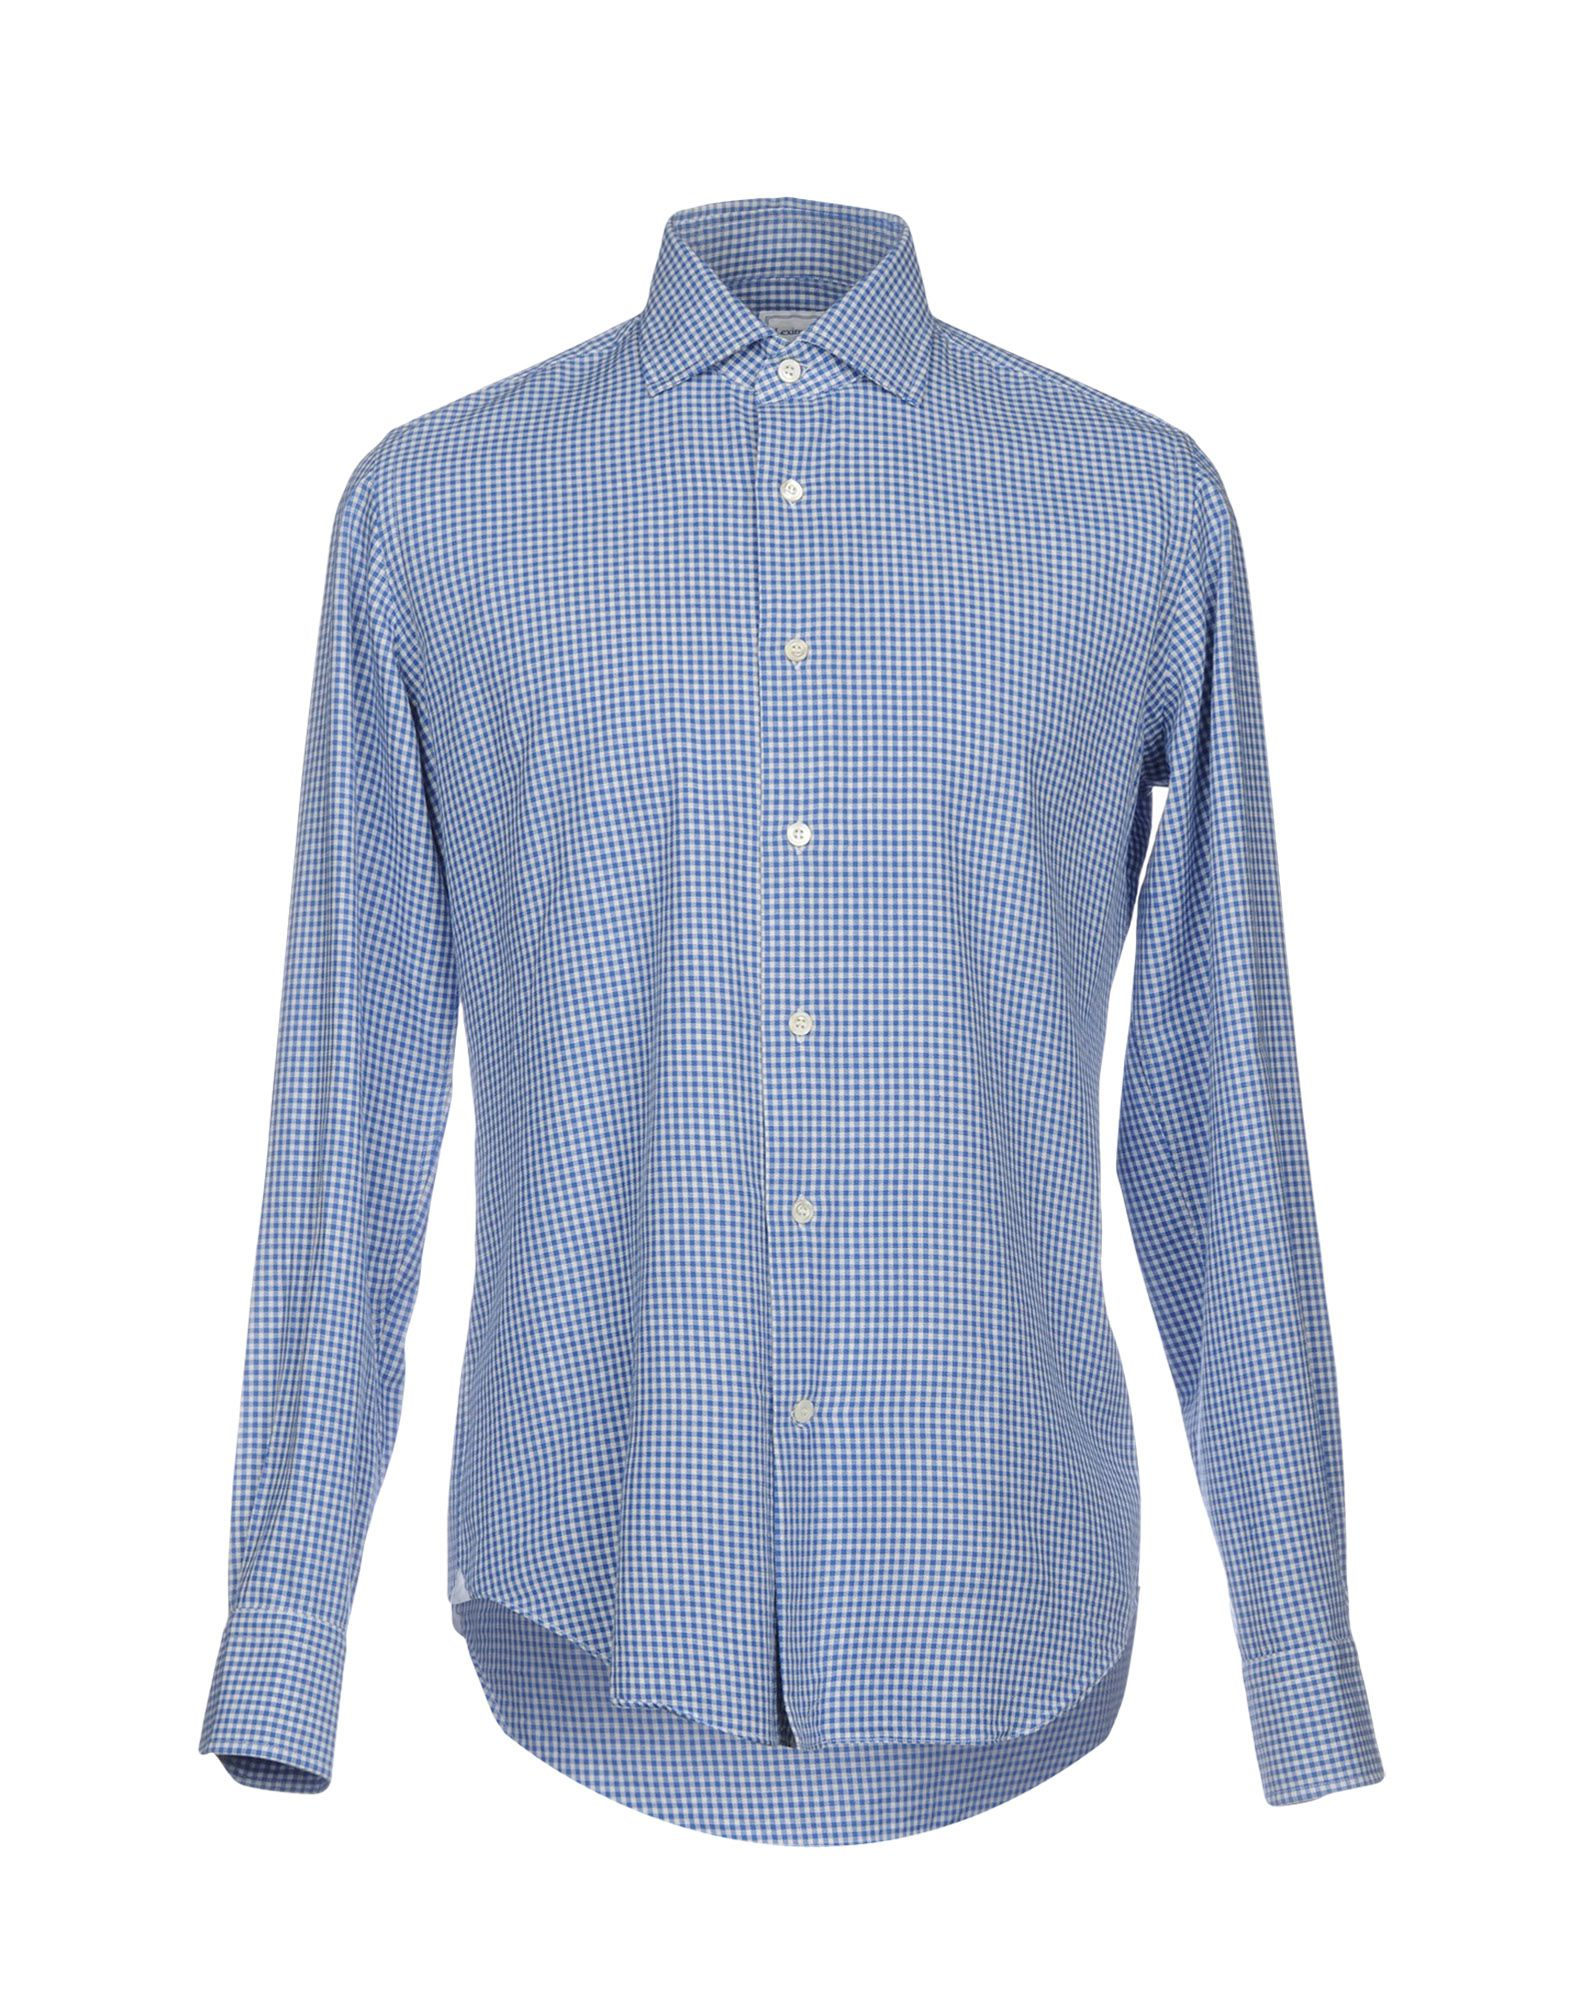 LEXINGTON Checked Shirt in Blue